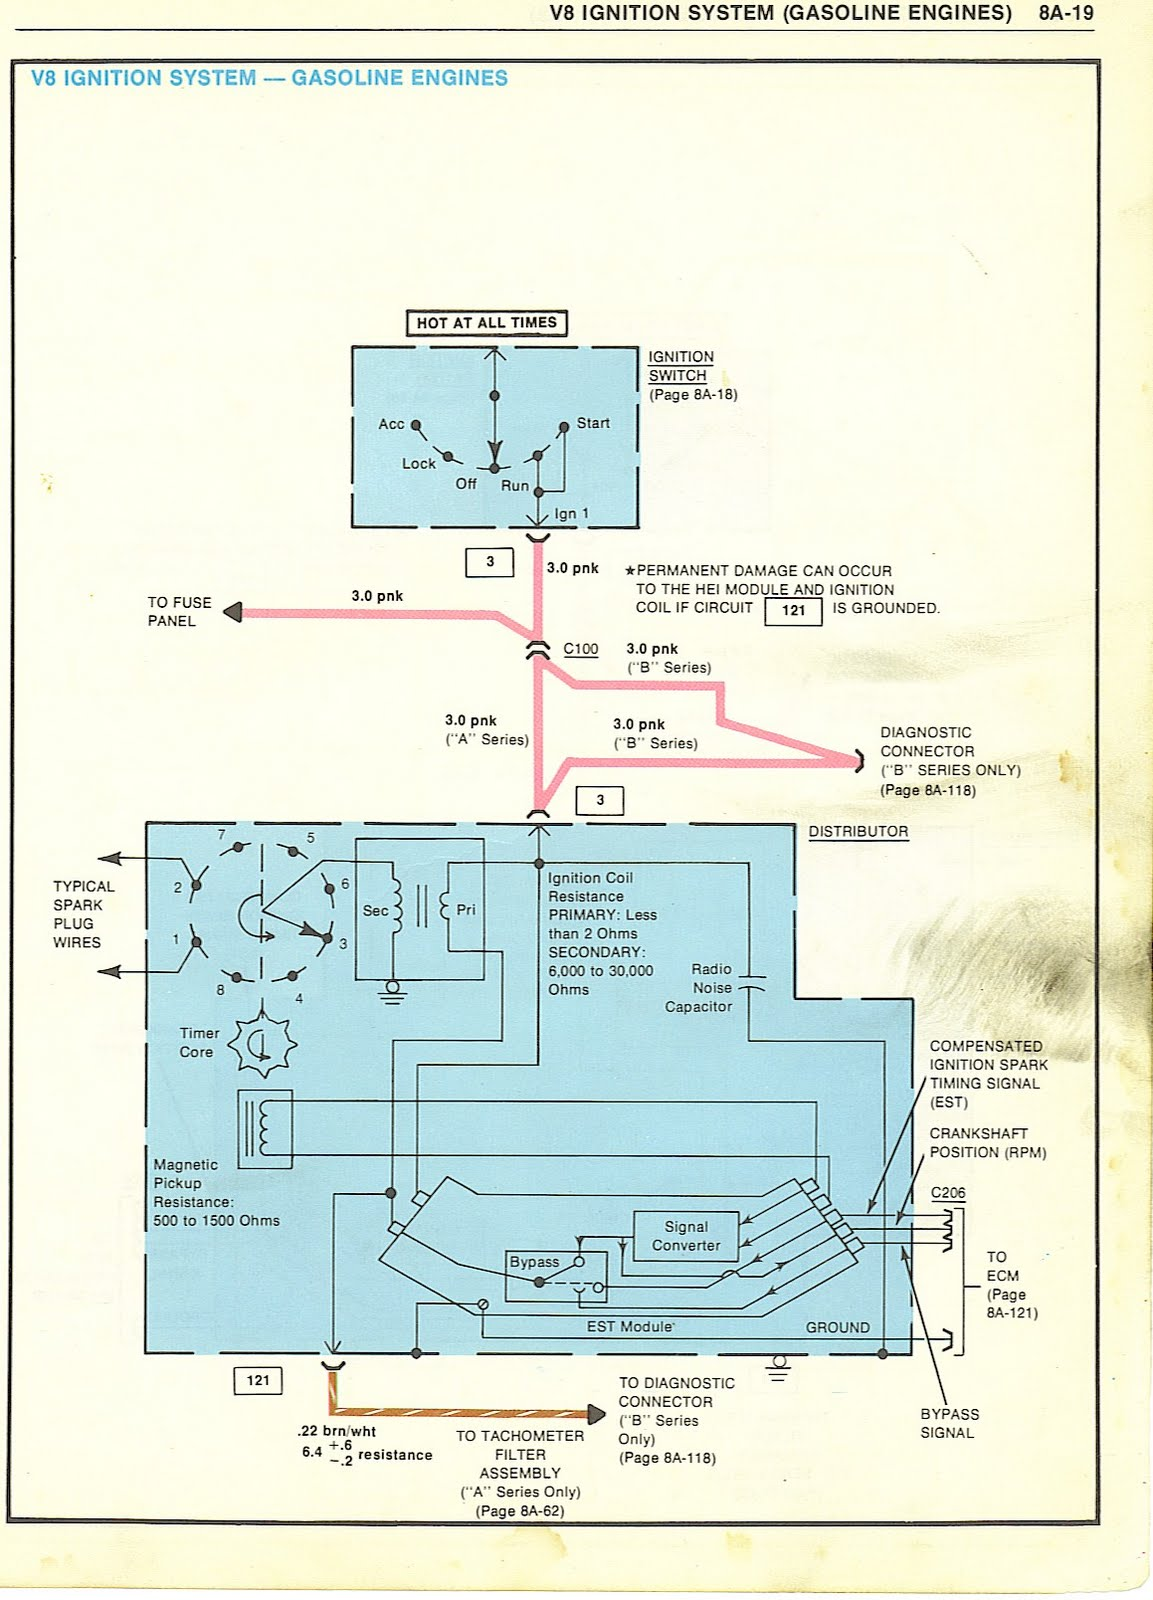 Free Auto Wiring Diagram: Chevrolet Malibu V8 Ignition System Wiring Diagram